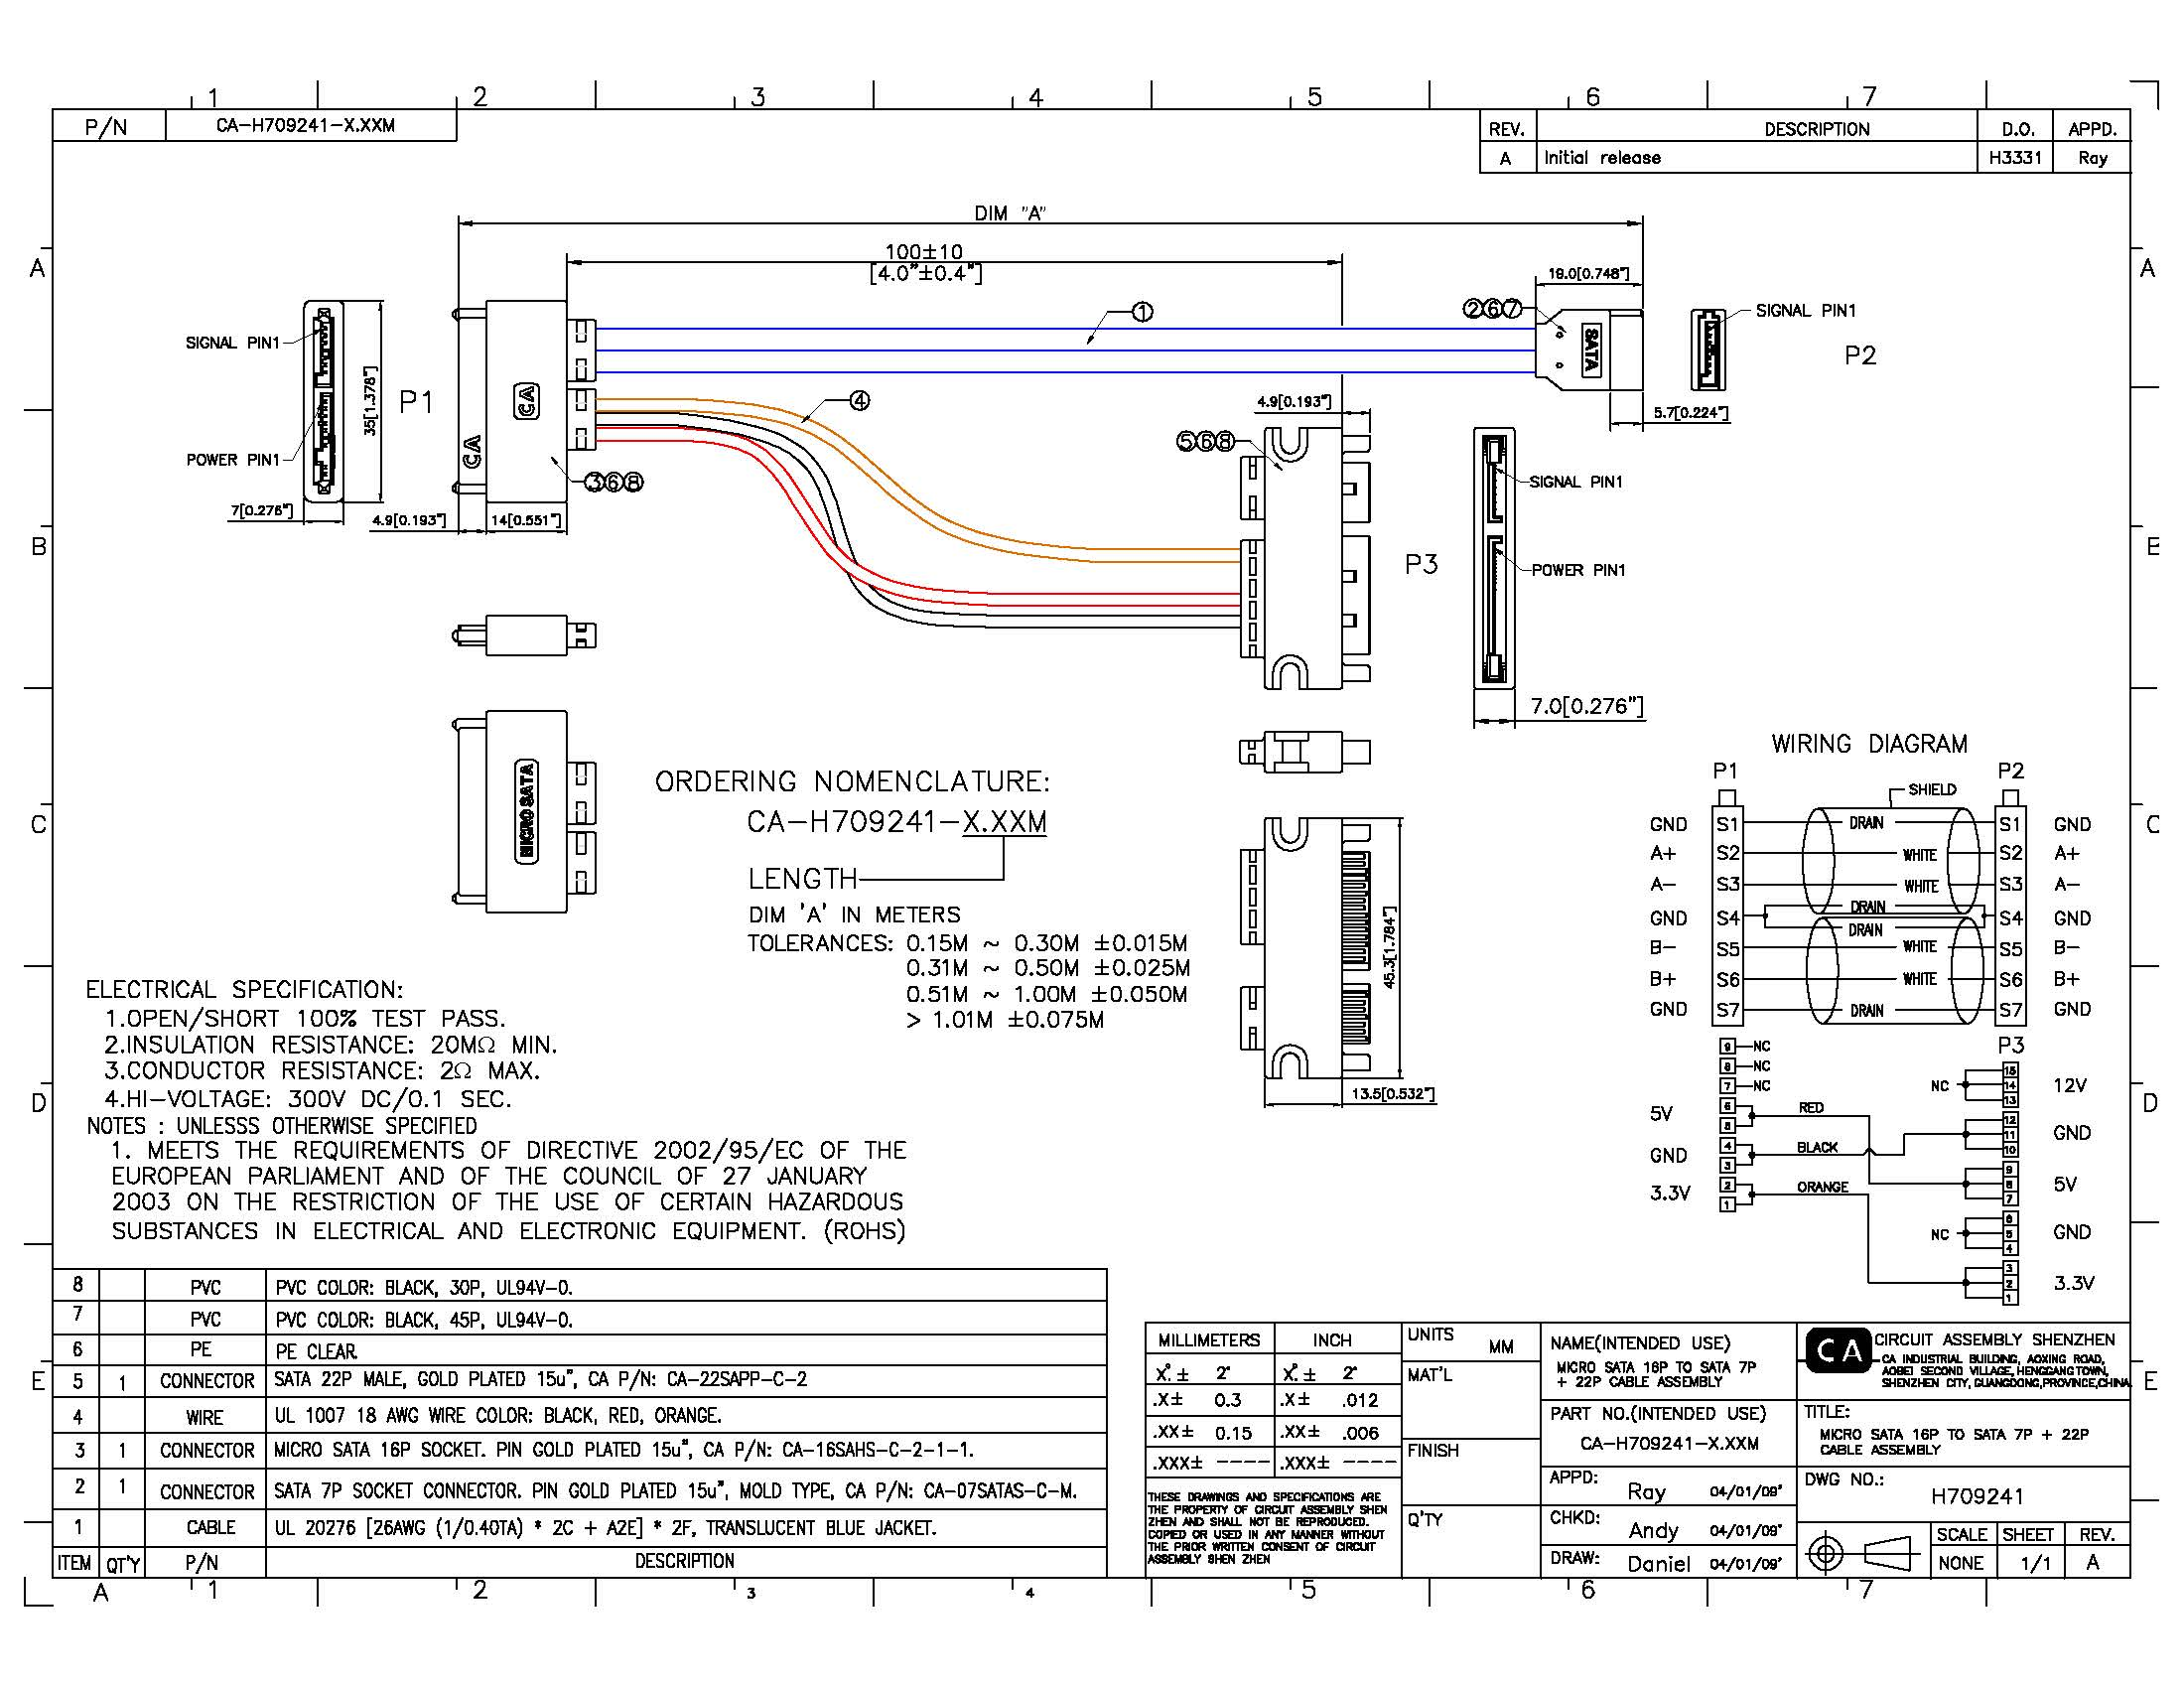 Molex To Sata Wiring Diagram from static-cdn.imageservice.cloud